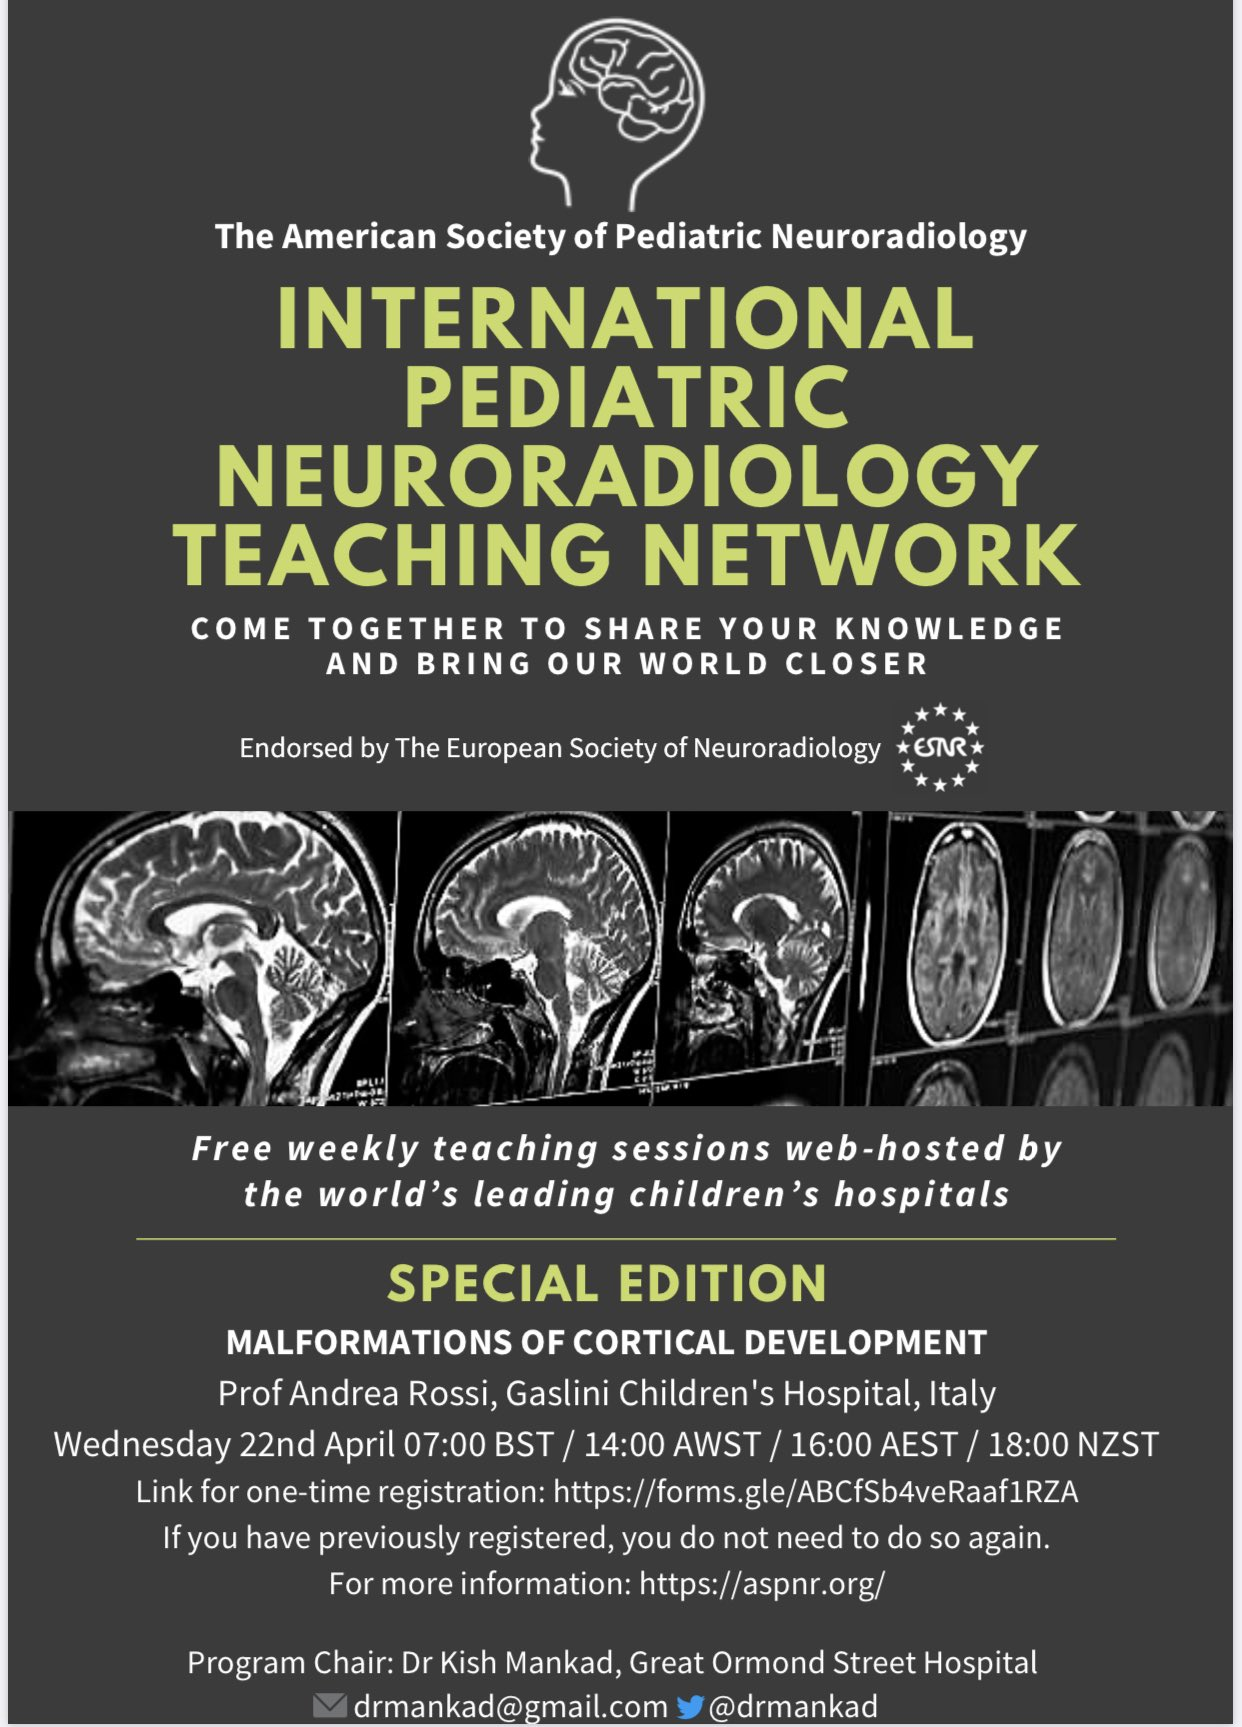 Radiology Malformations of Cortical Development